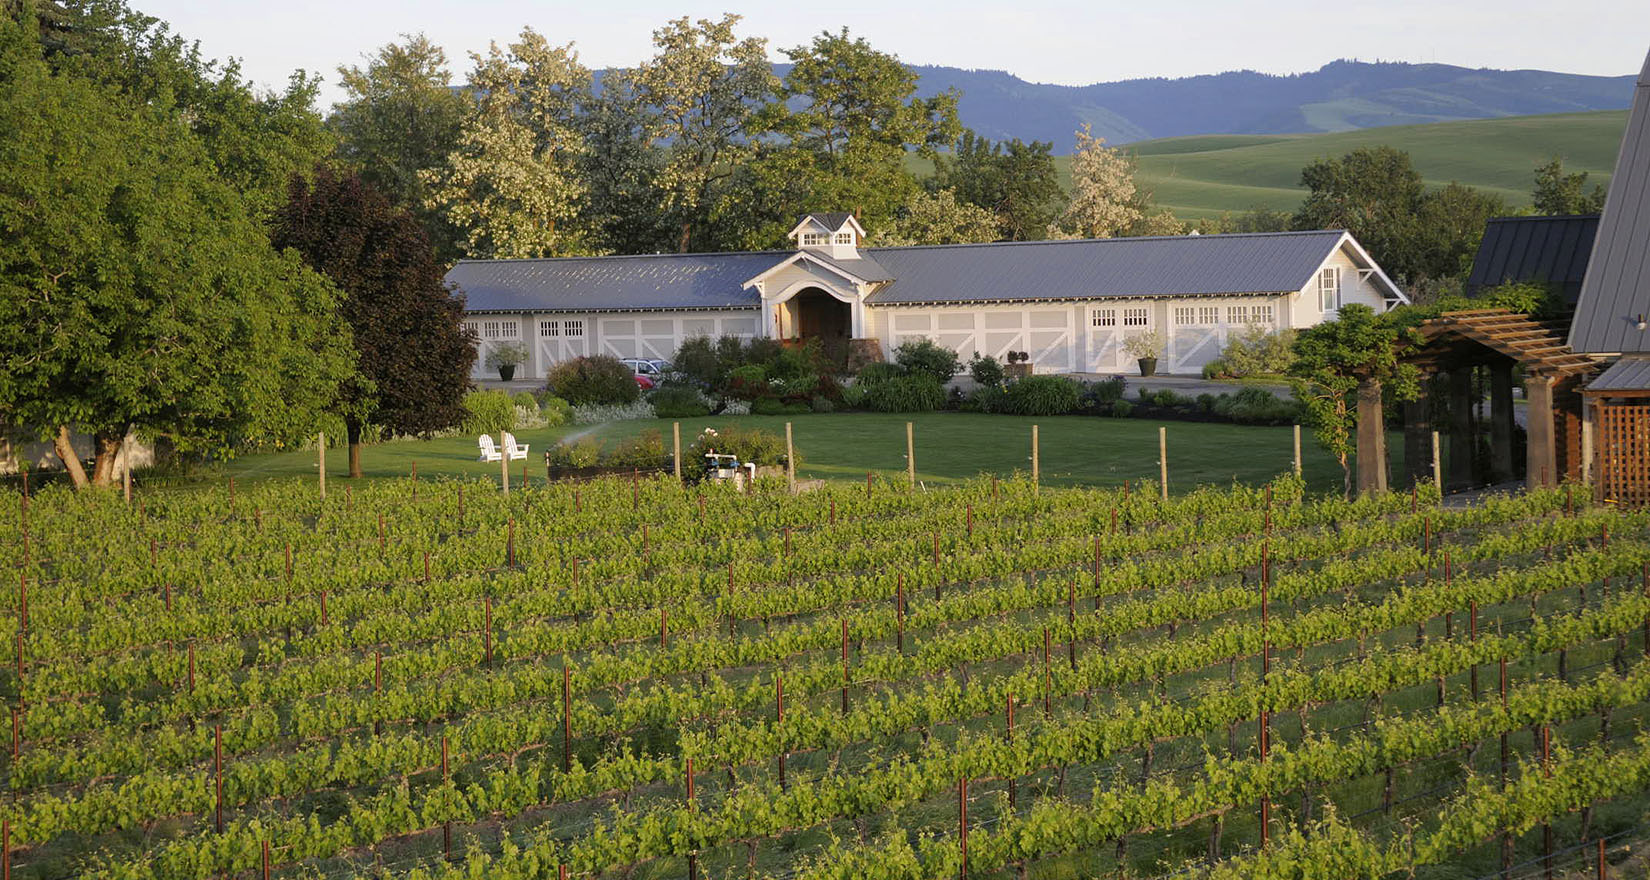 Abeja vineyard and building